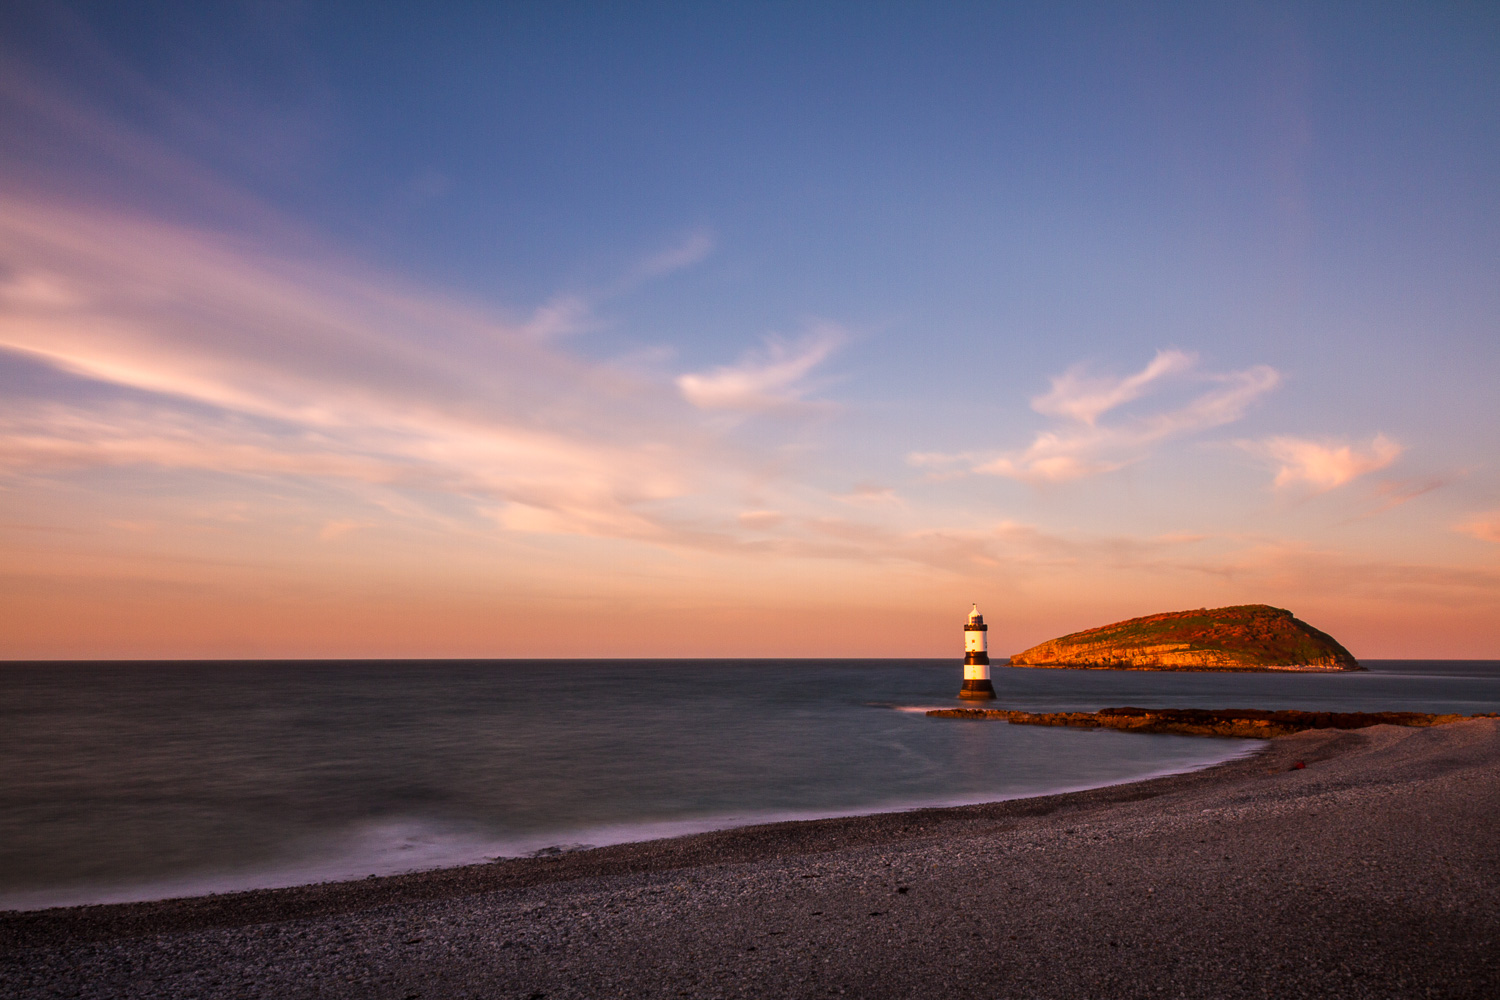 A Long Exposure Photograph Showing Trwyn Du Lighthouse And Puffin Island From The Shoreline At Sunset With Wisps Of Cloud In The Sky.